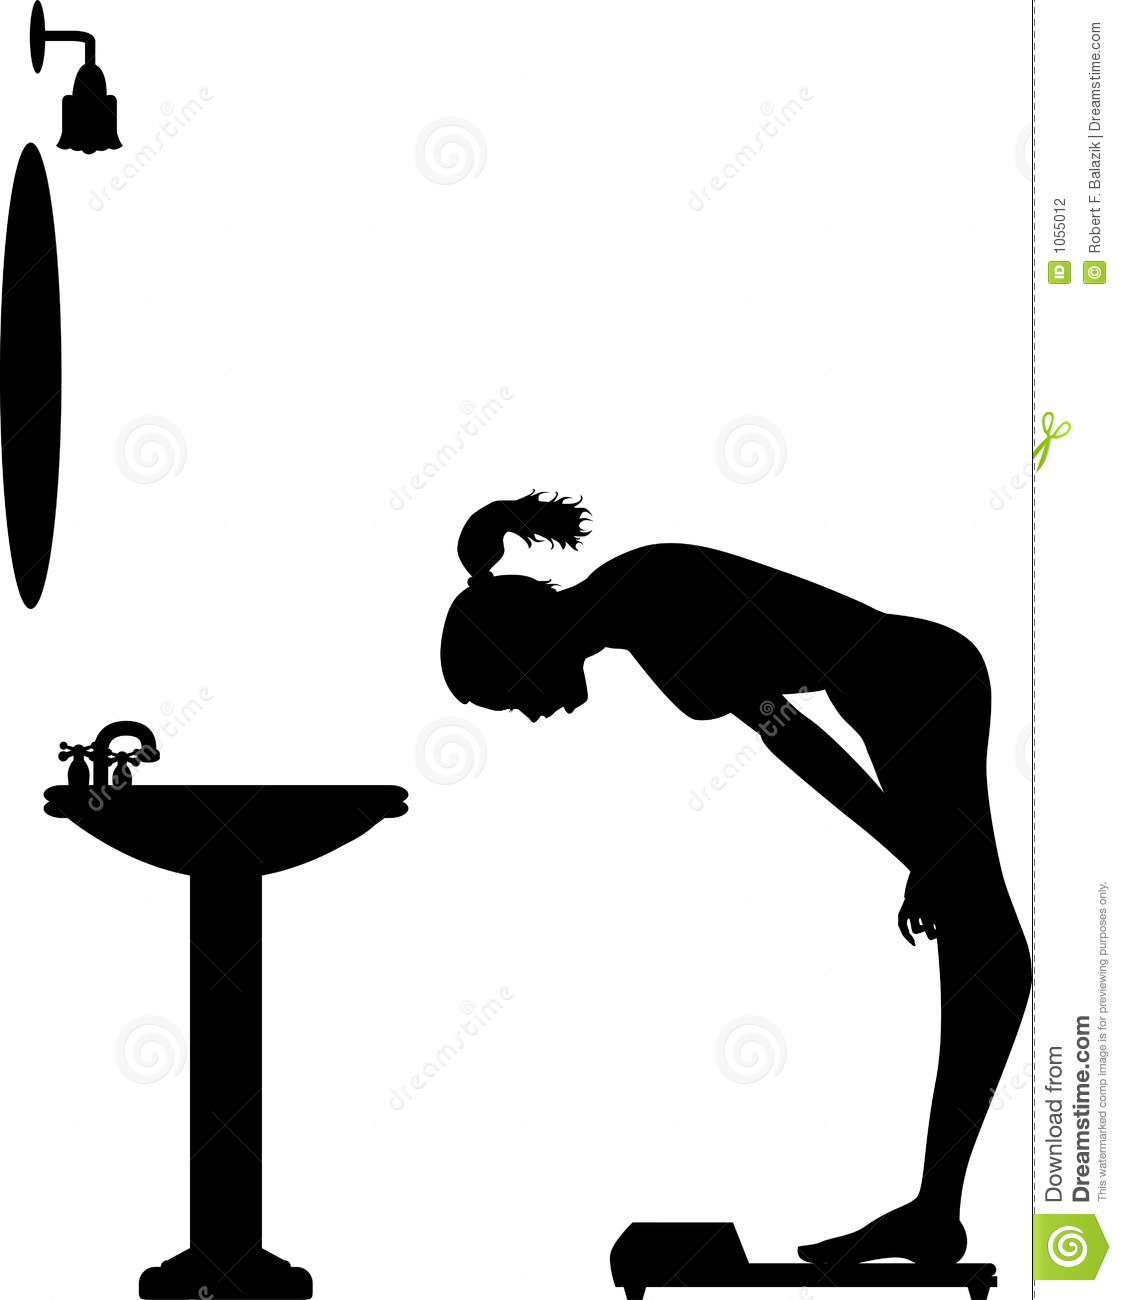 Silhouette Graphic Depicting A Woman Weighing Herself On A Bathroom